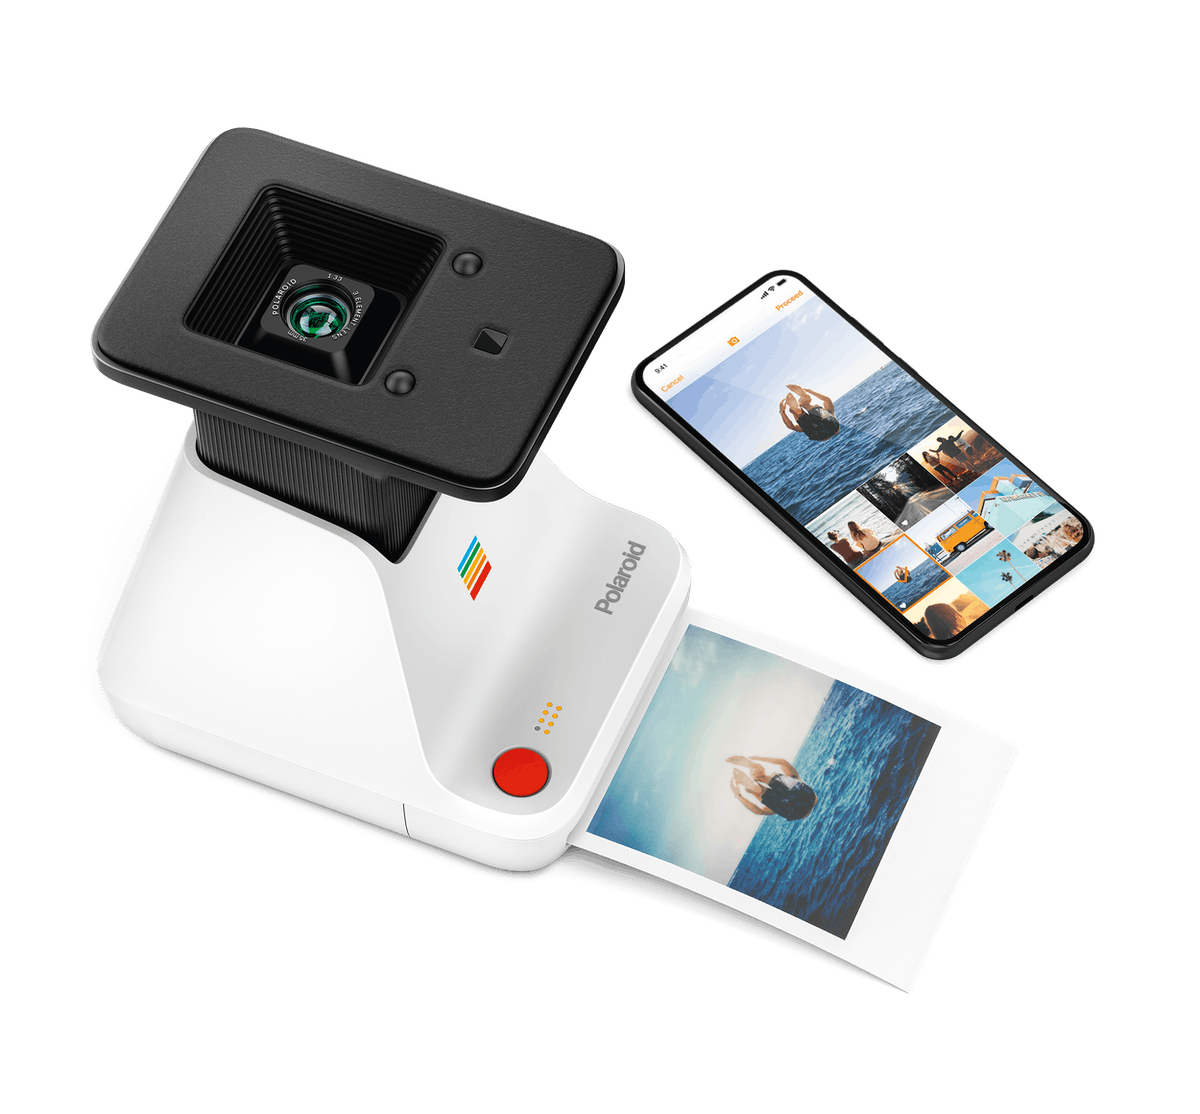 The Polaroid Lab lets to turn the pictures on your phone into physical Polaroids.